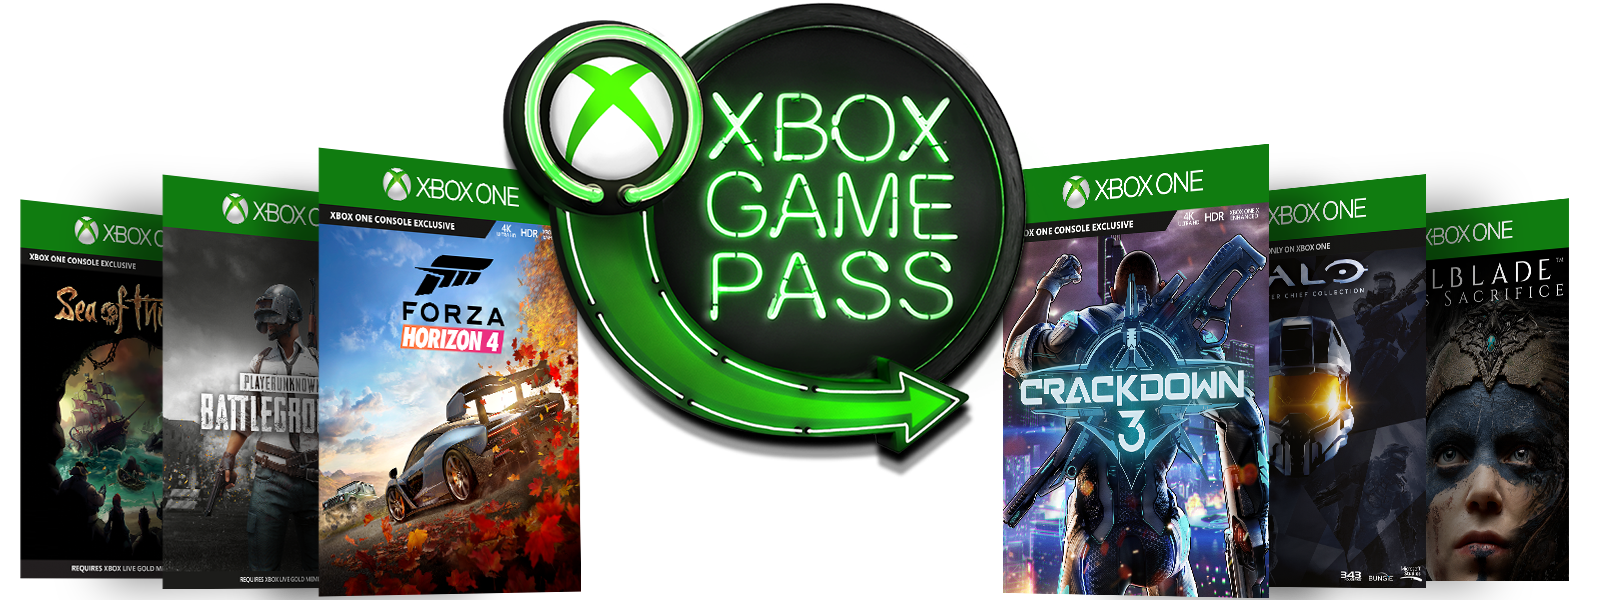 Imagens das caixas do Sea of Thieves, PLAYERUNKNOWN'S Battlegrounds, Forza Horizon 4, Crackdown 3, Halo The Master Chief Collection e Hellblade Senuas Sacrifice em redor do sinal néon com o logótipo do Xbox Game Pass